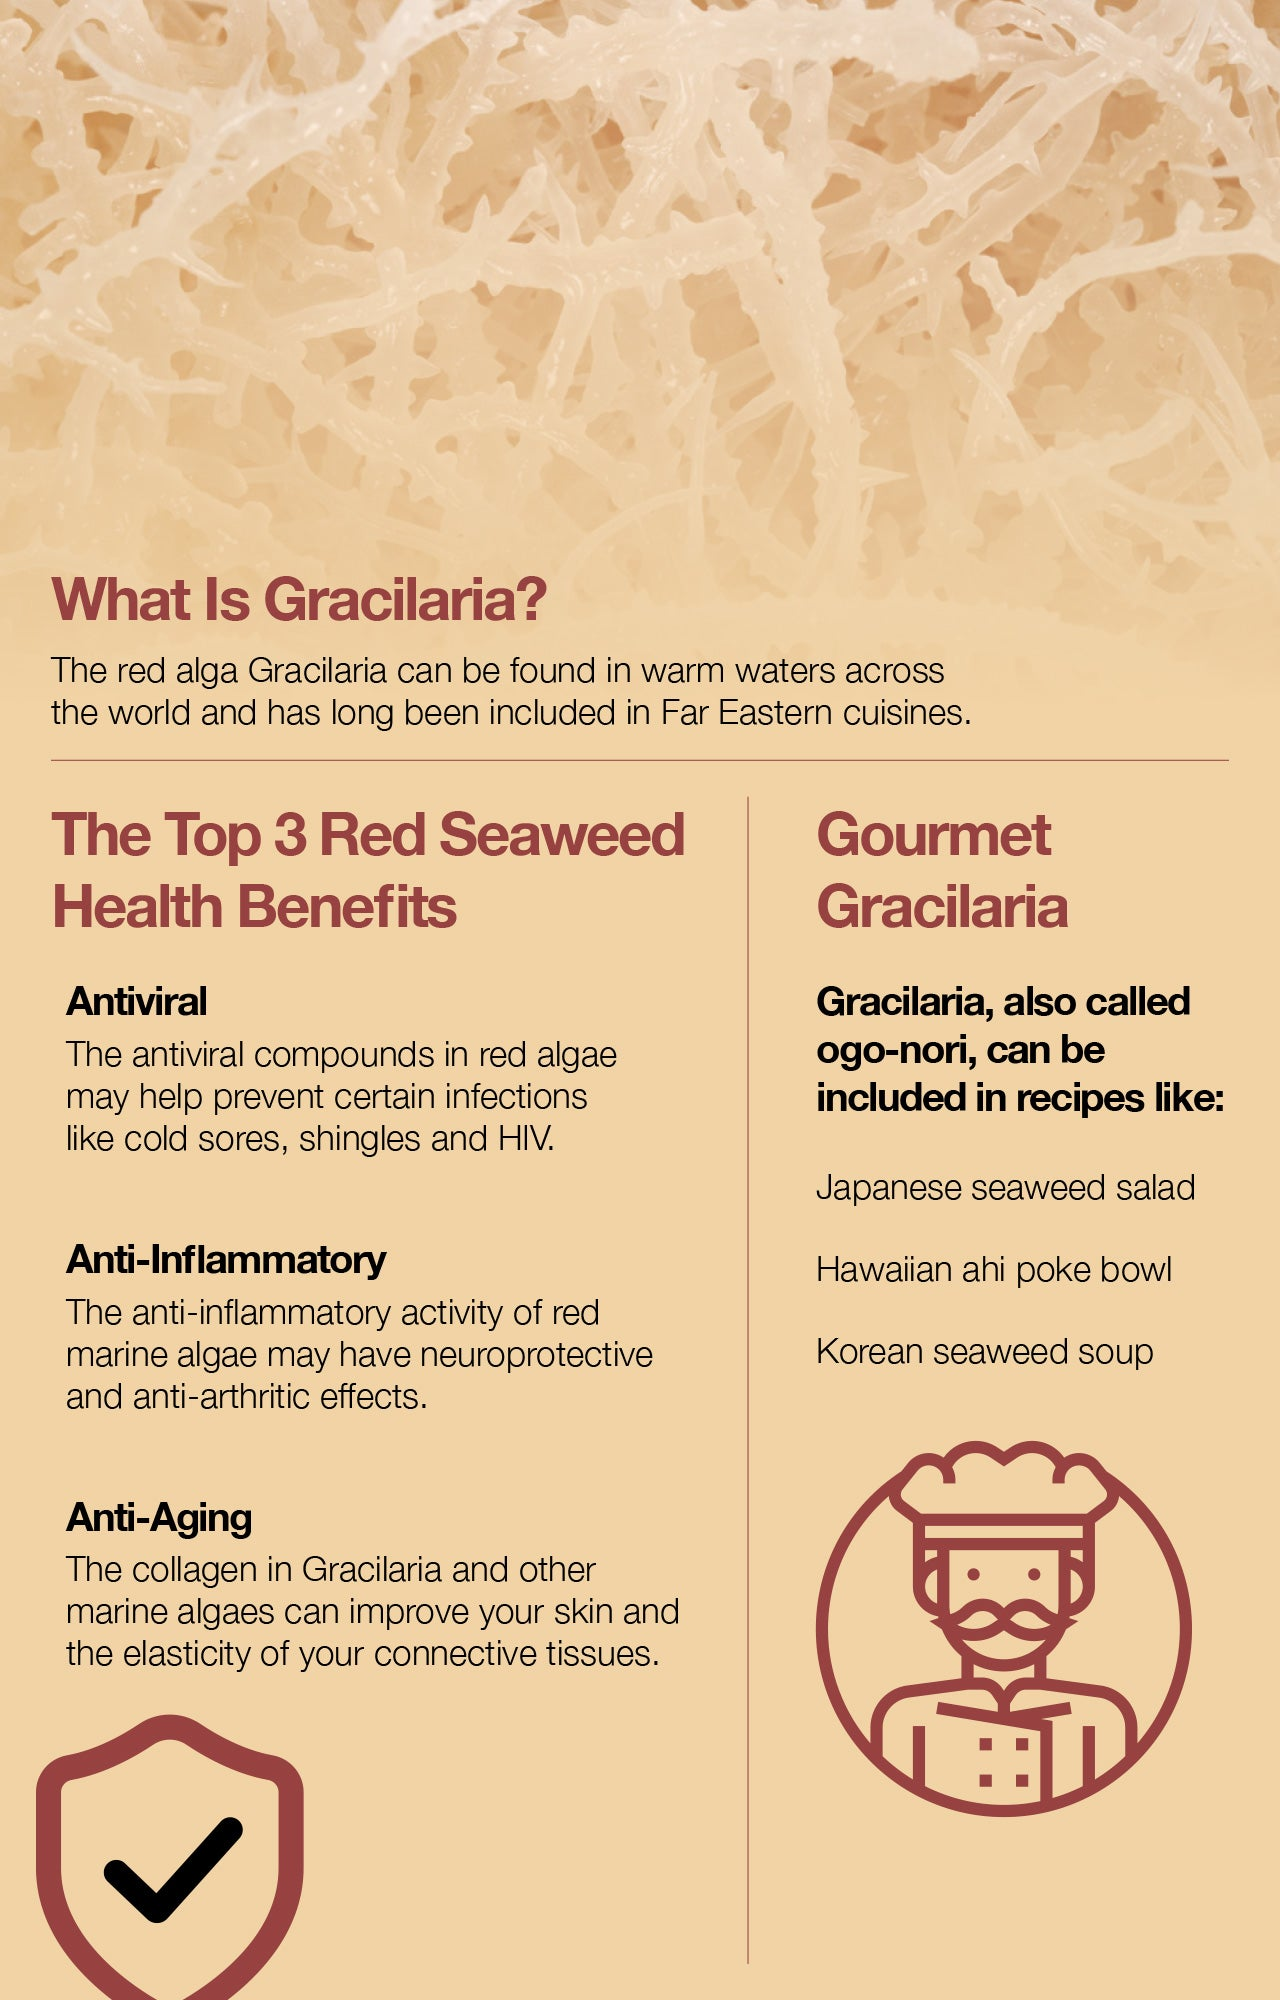 The Top 3 Red Seaweed Health Benefits